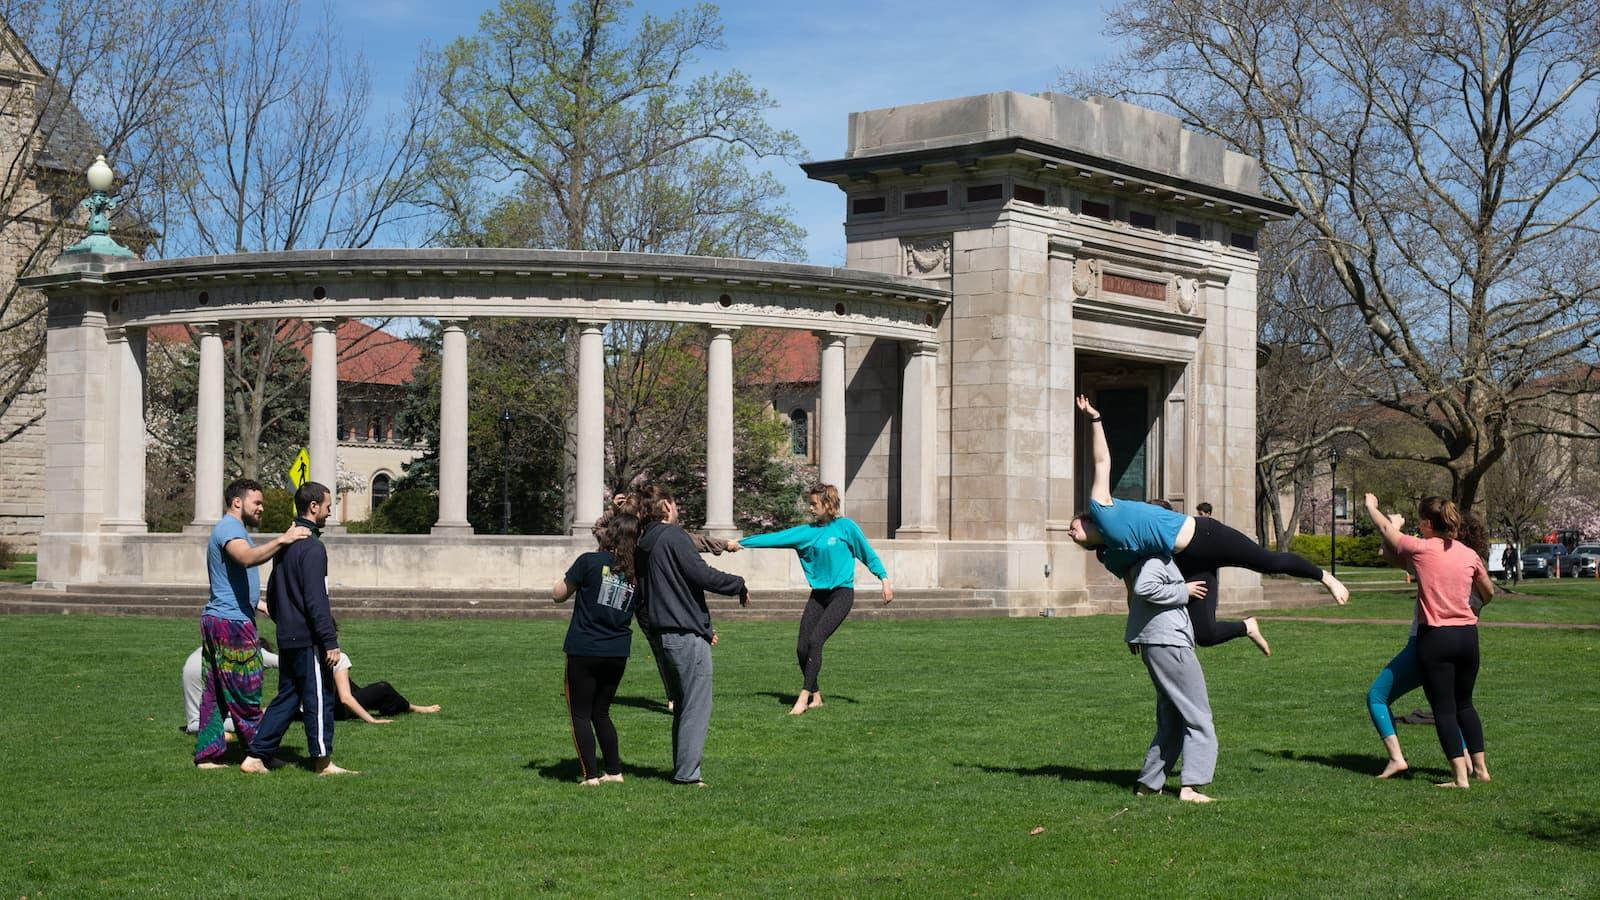 Dance students rehearsing on Tappan Square by the arch.